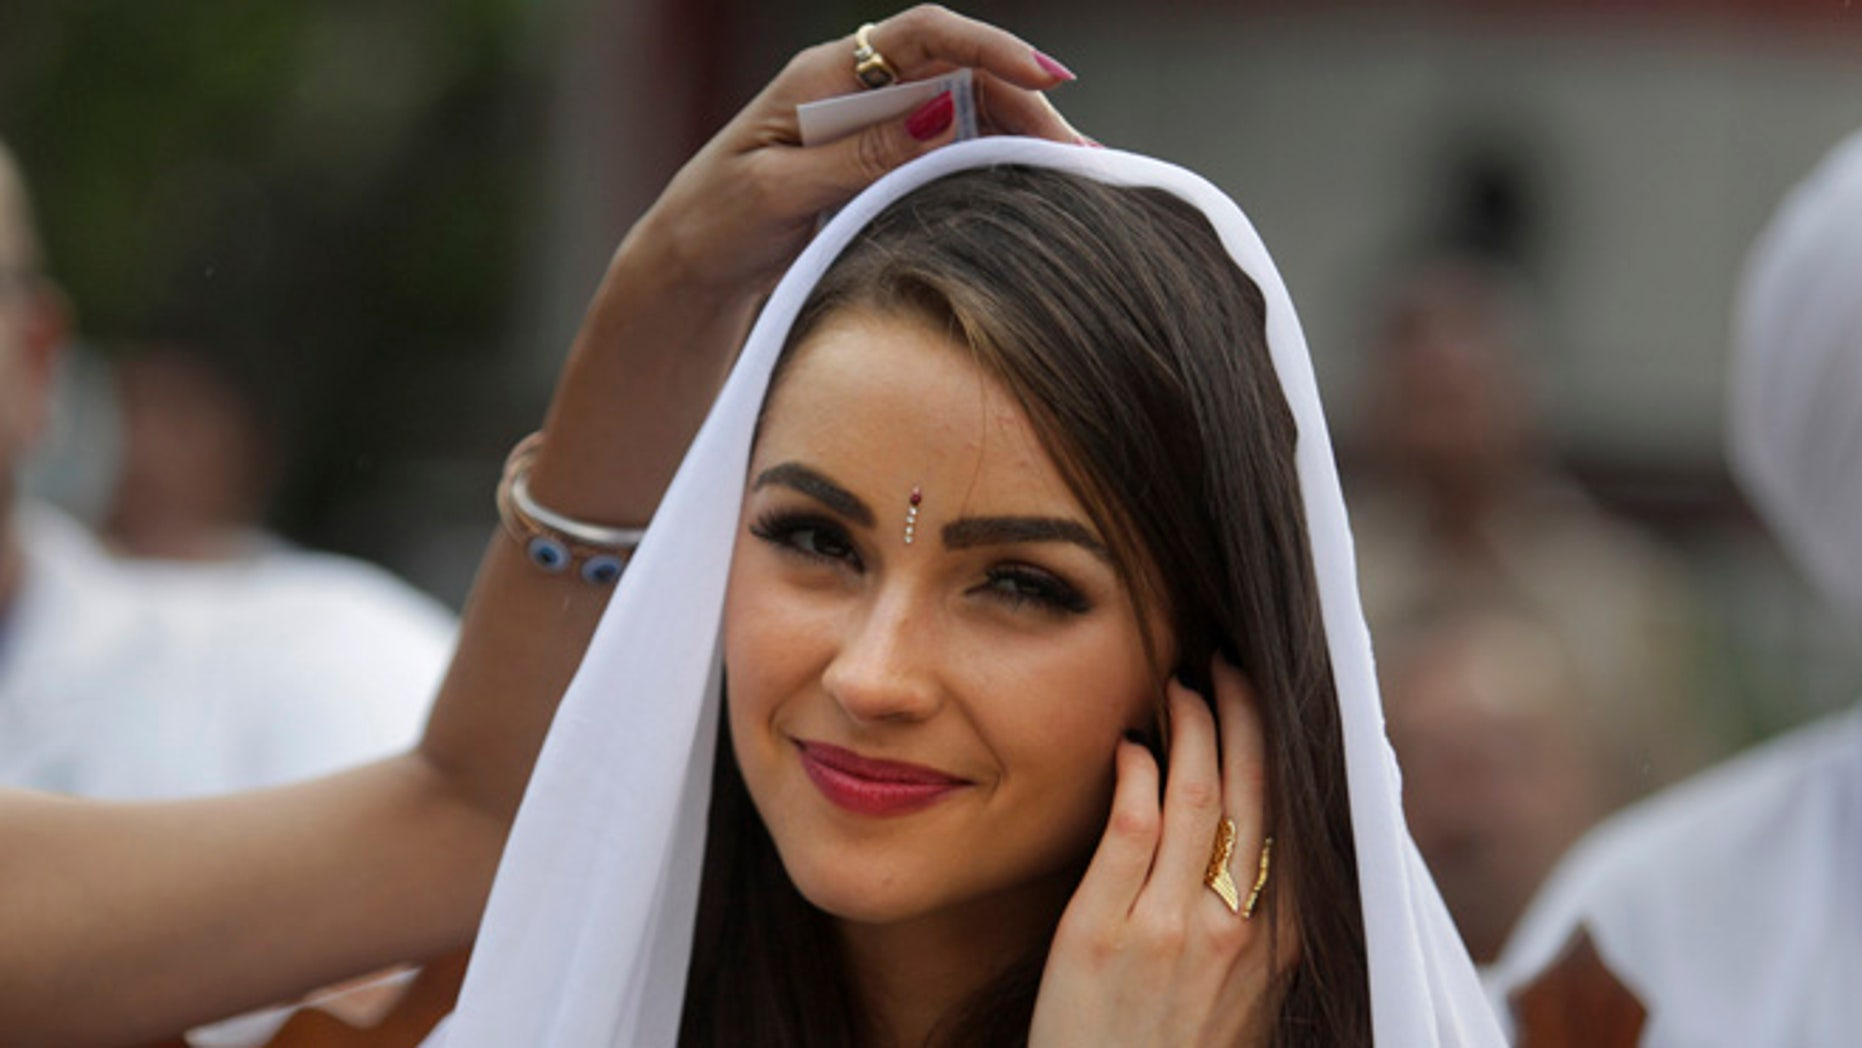 Sept. 30, 2013: Miss Universe, Olivia Culpo of the USA, watches a performance by inmates as designer Sanjana Jon, adjusts her veil during a visit to the Tihar Jail in New Delhi, India. Tihar is a massive complex of nine separate jails in New Delhi that is one of the largest incarceration facilities in South Asia.